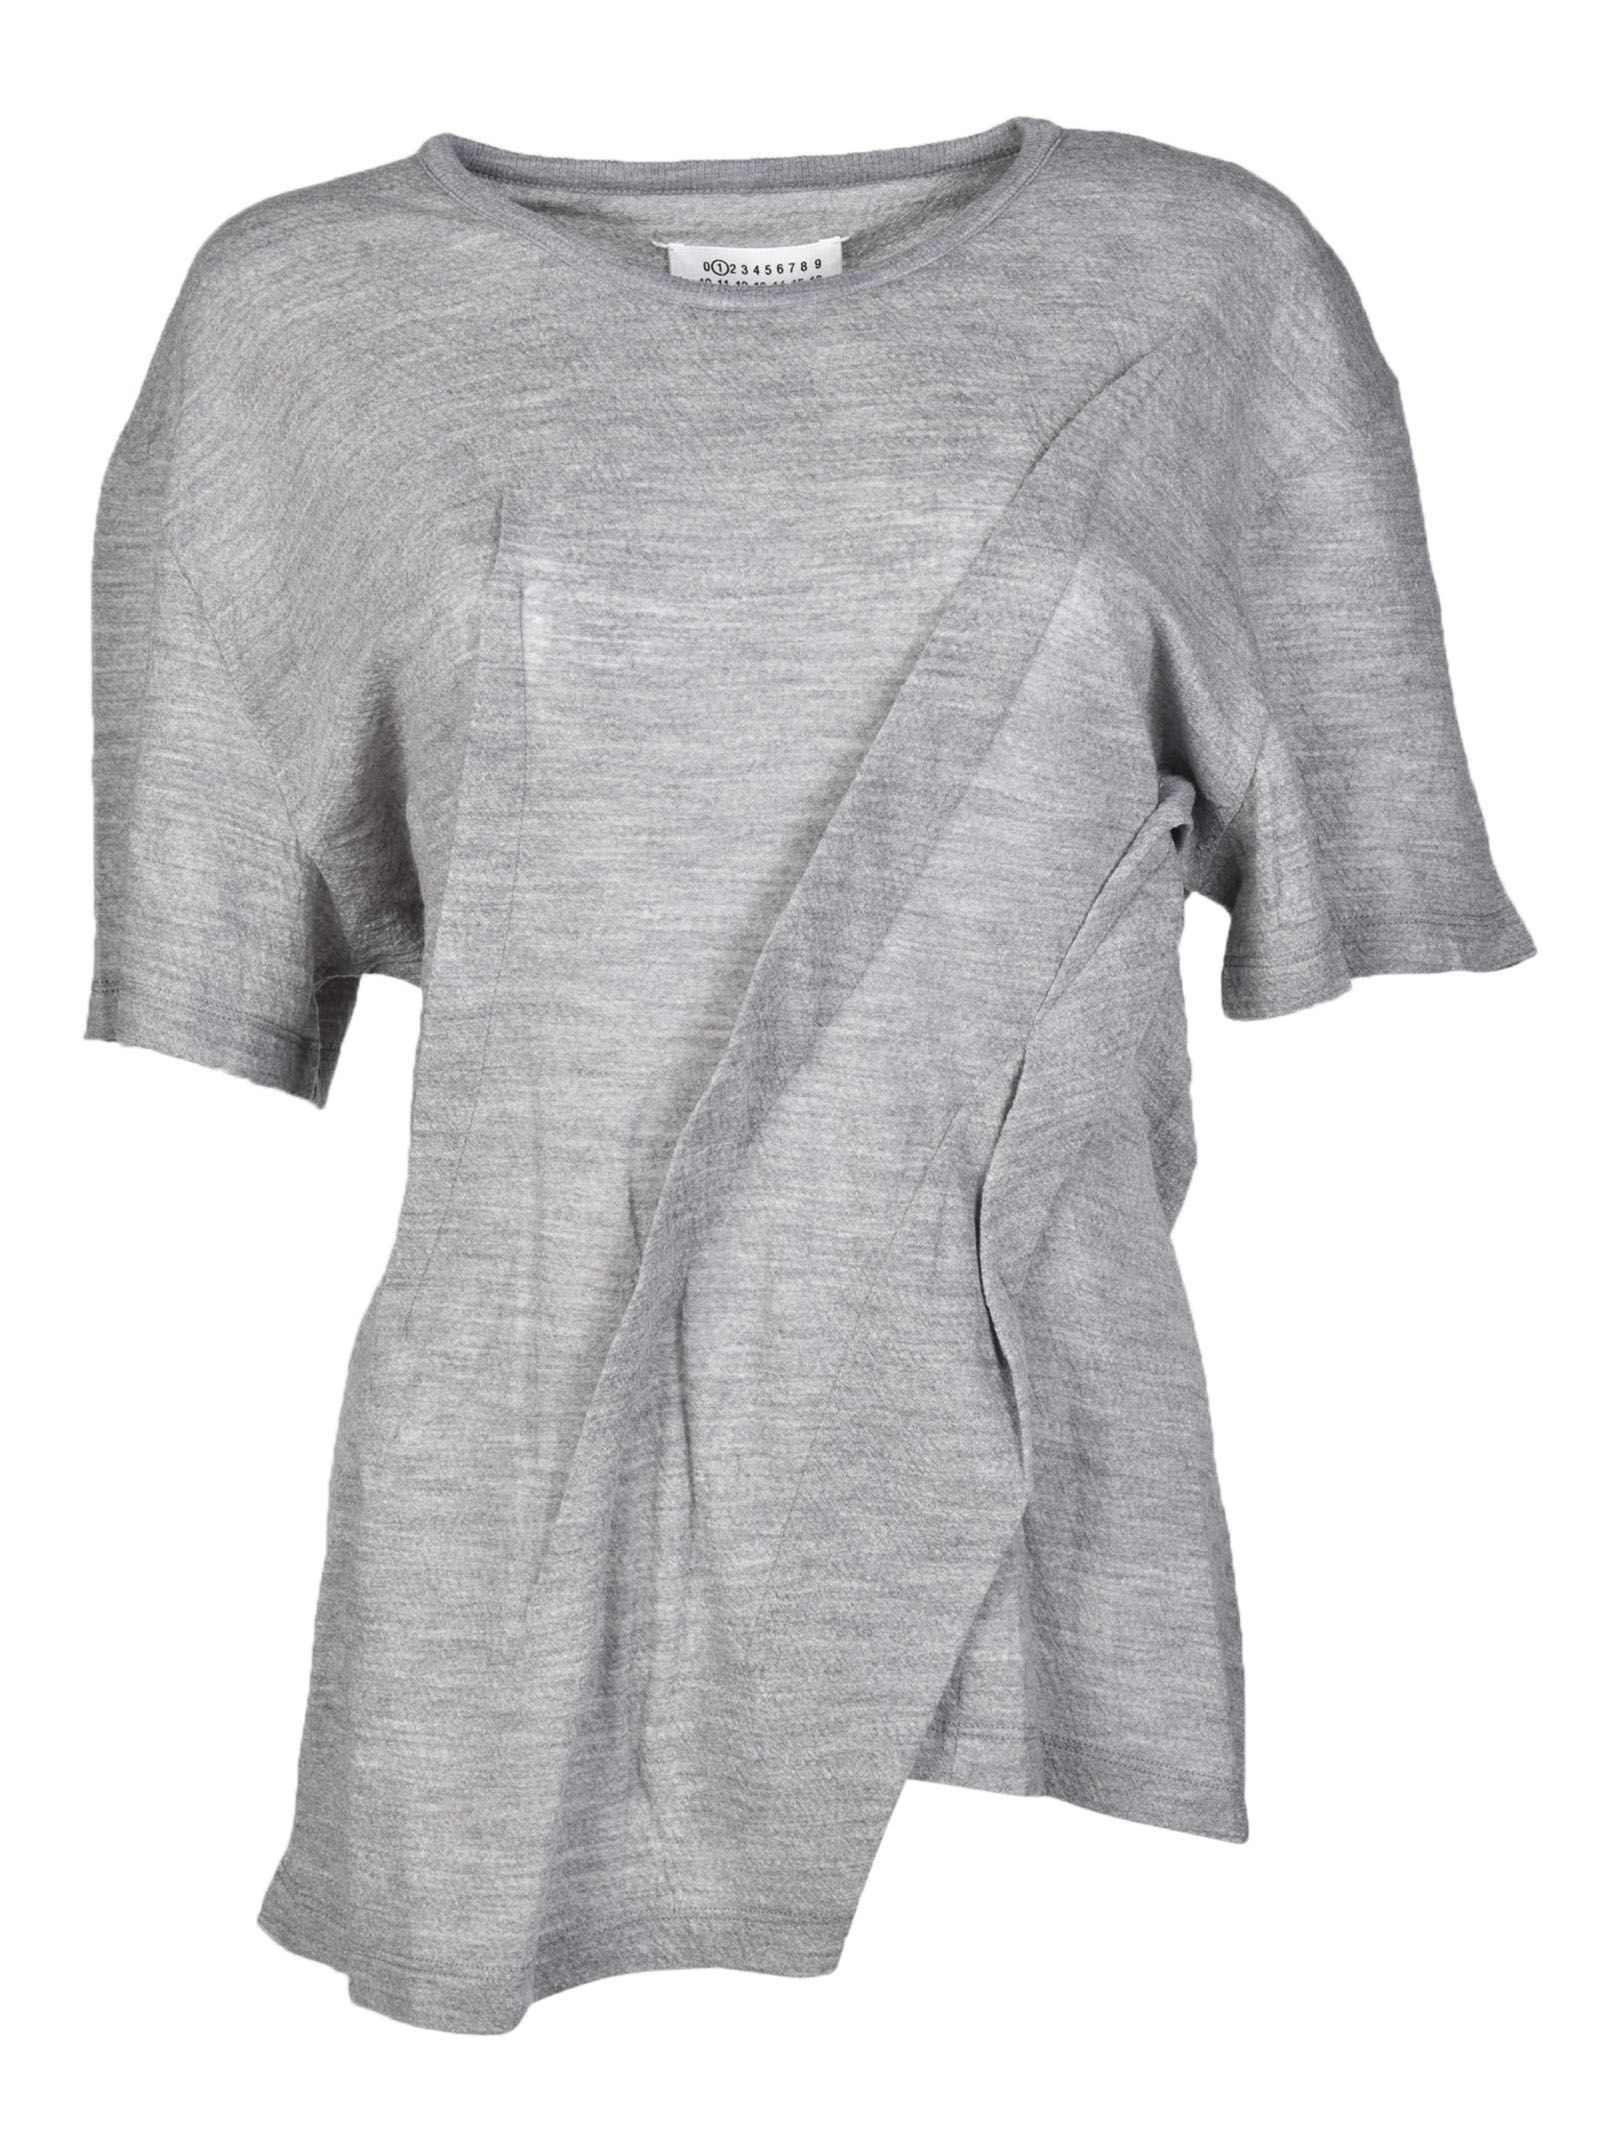 Maison Margiela Jersey Short Sleeve Top